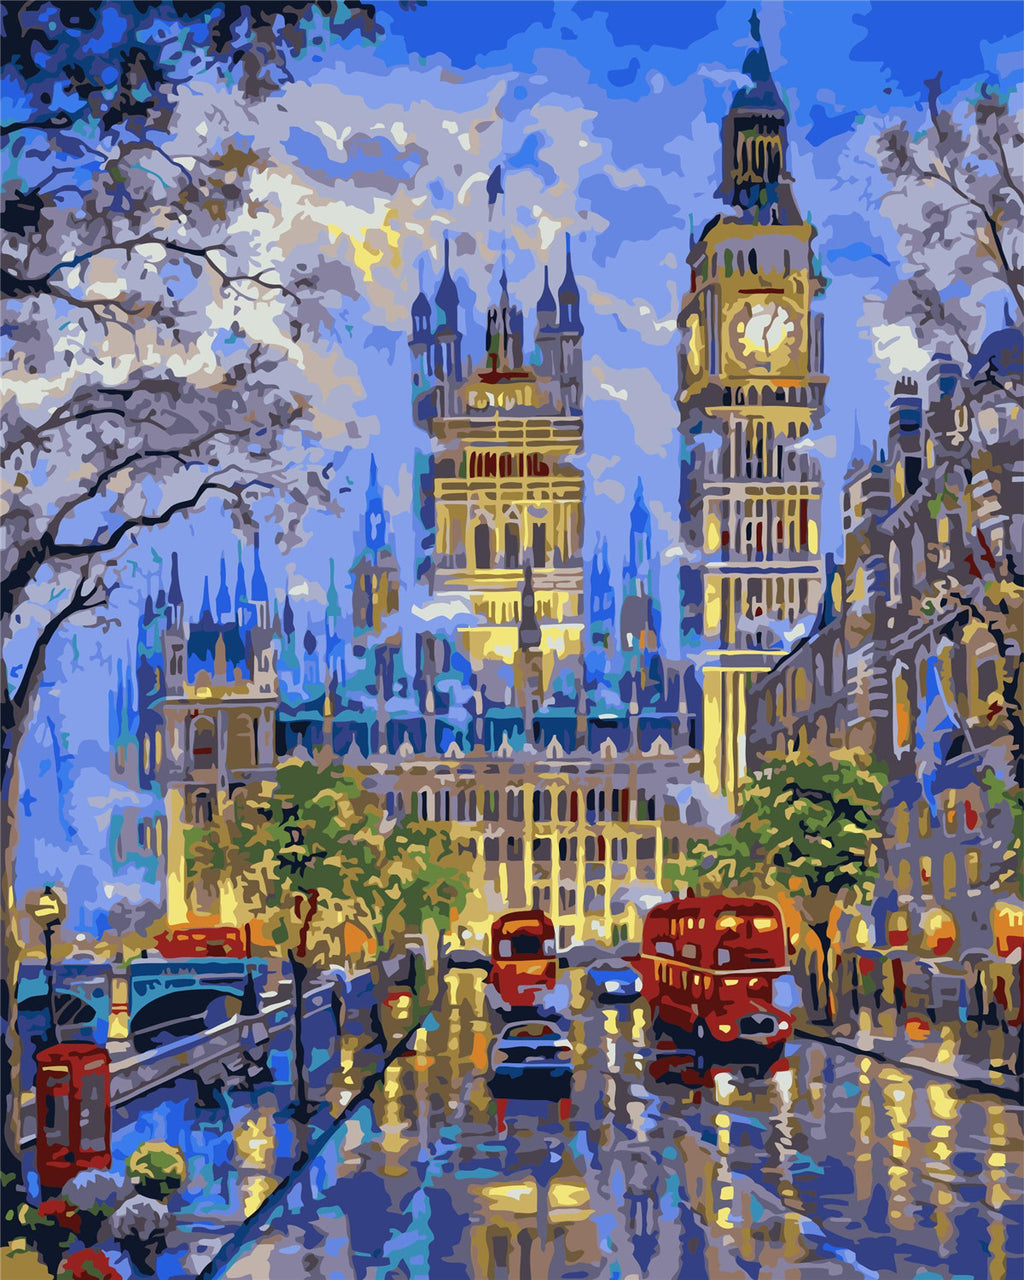 Landscape London Night Paint By Numbers Kits UK For Adult HQD1219